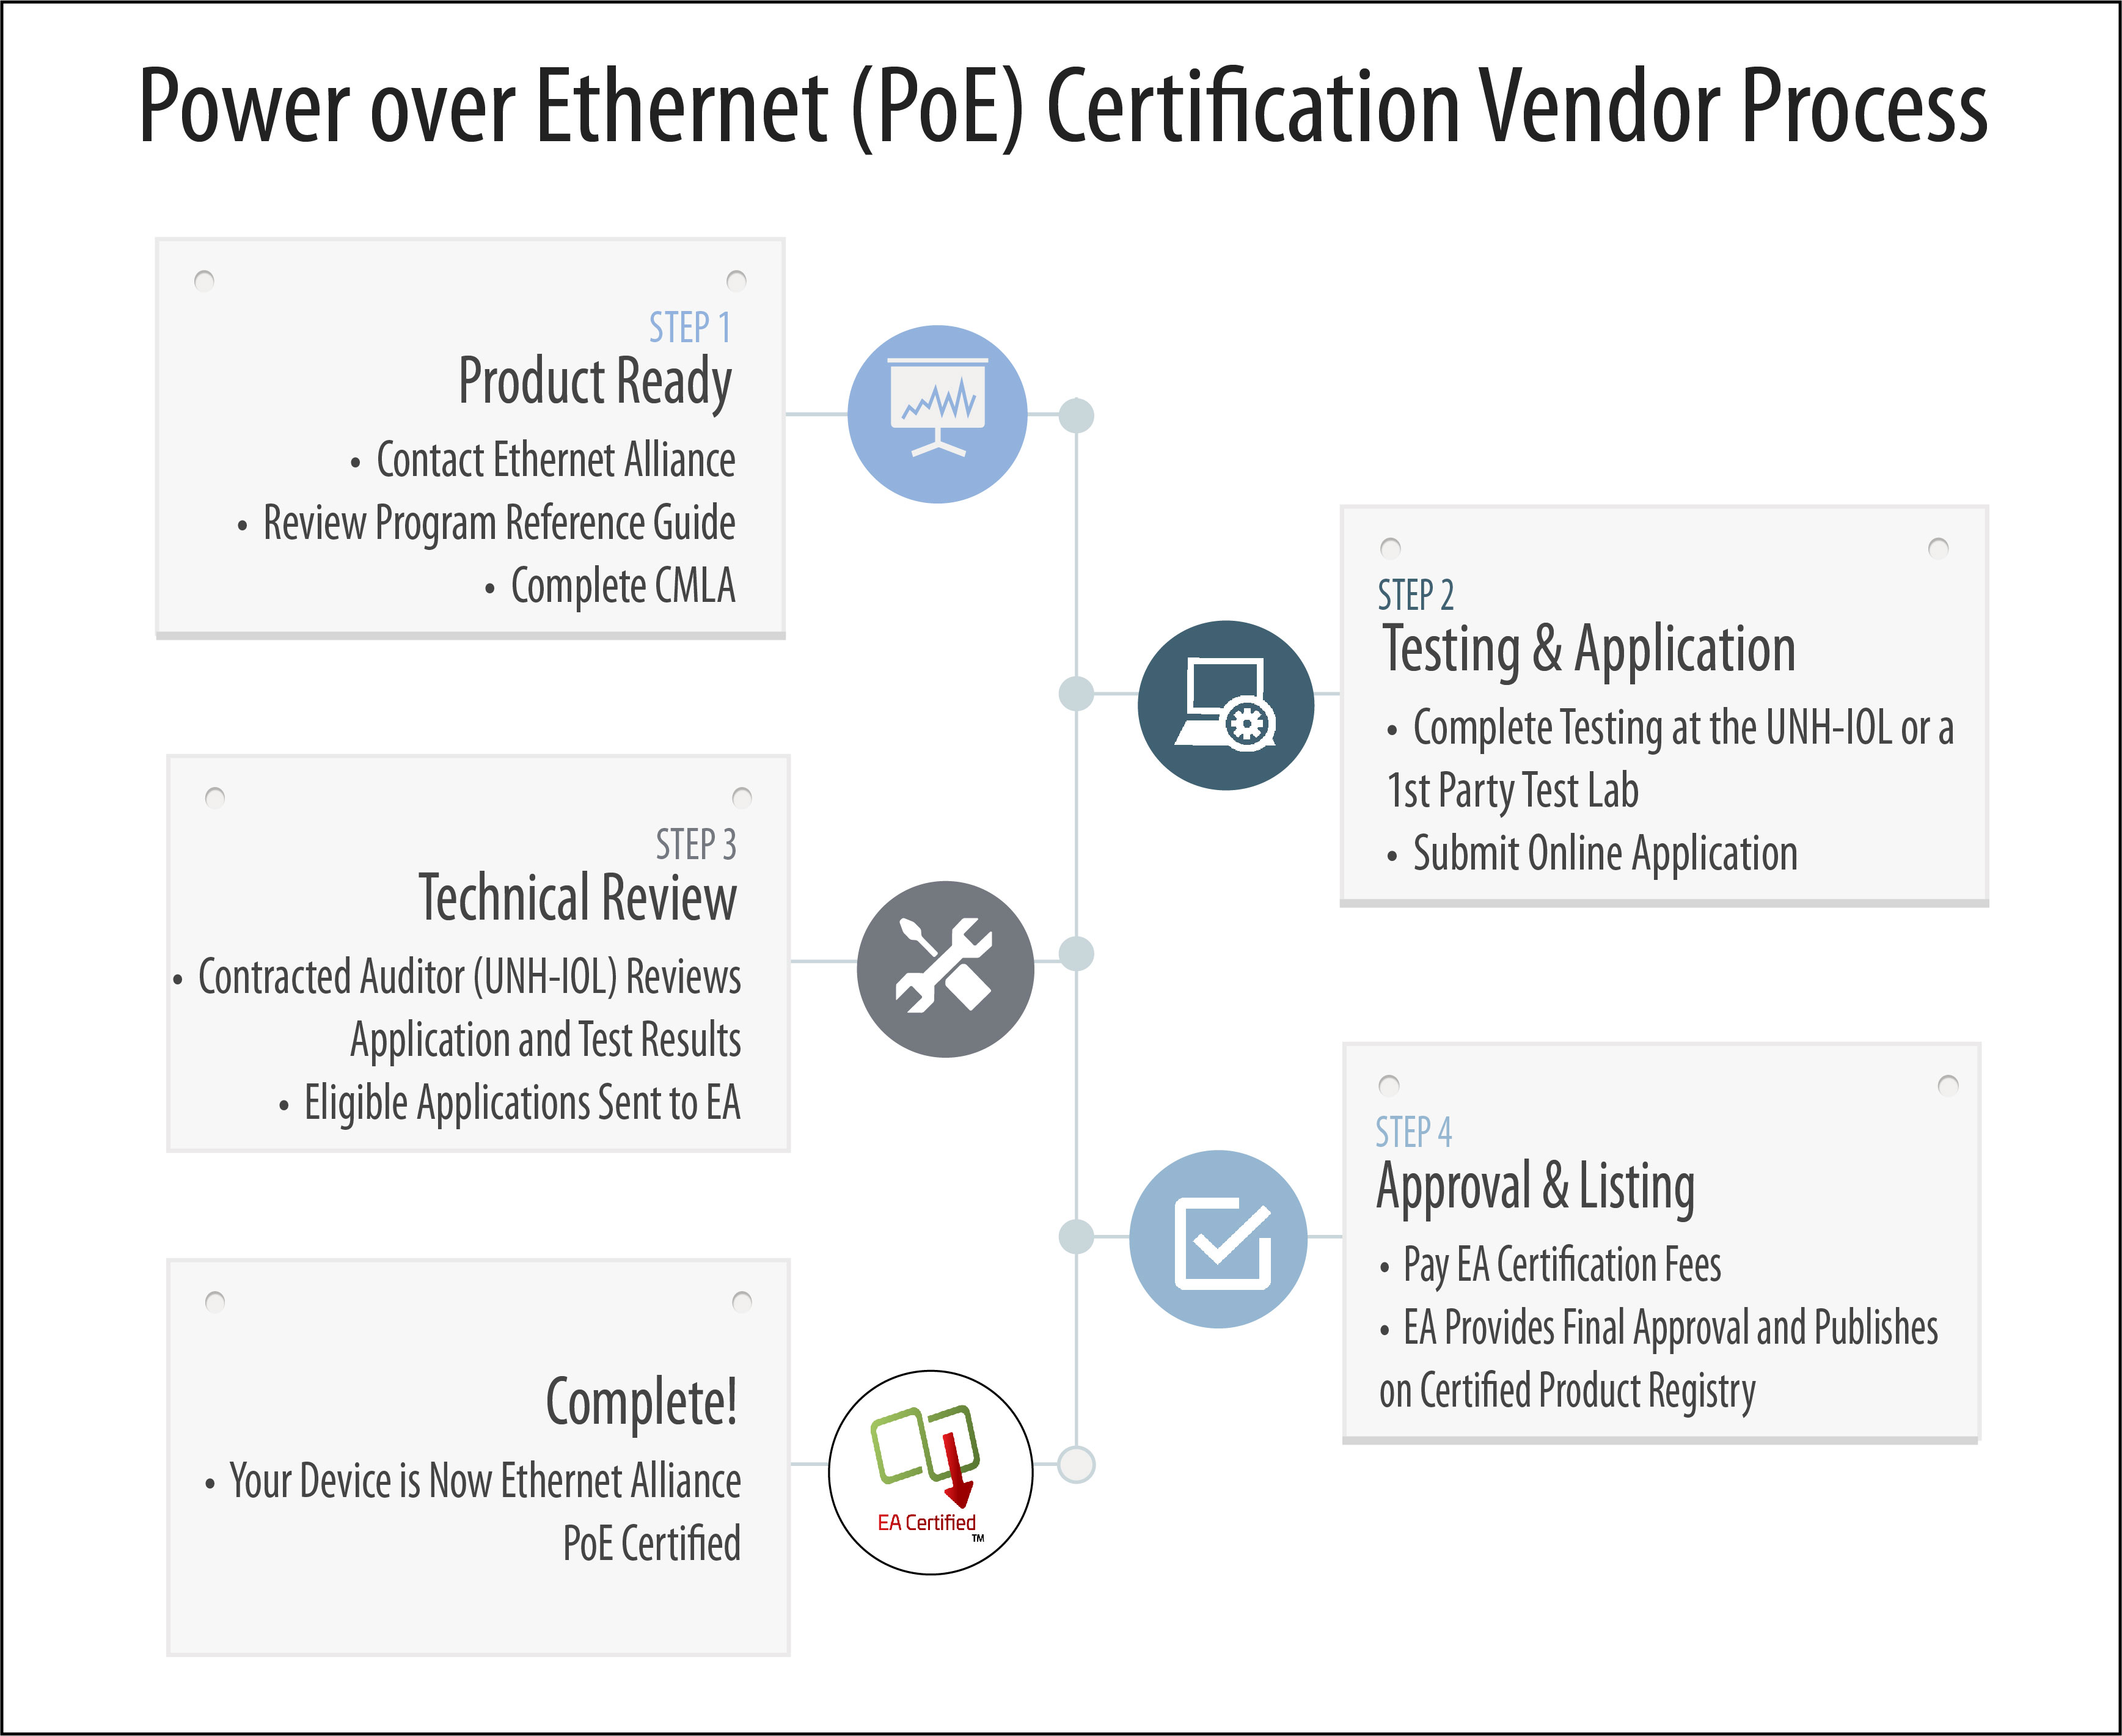 Diagram of the PoE Certification Vendor Process